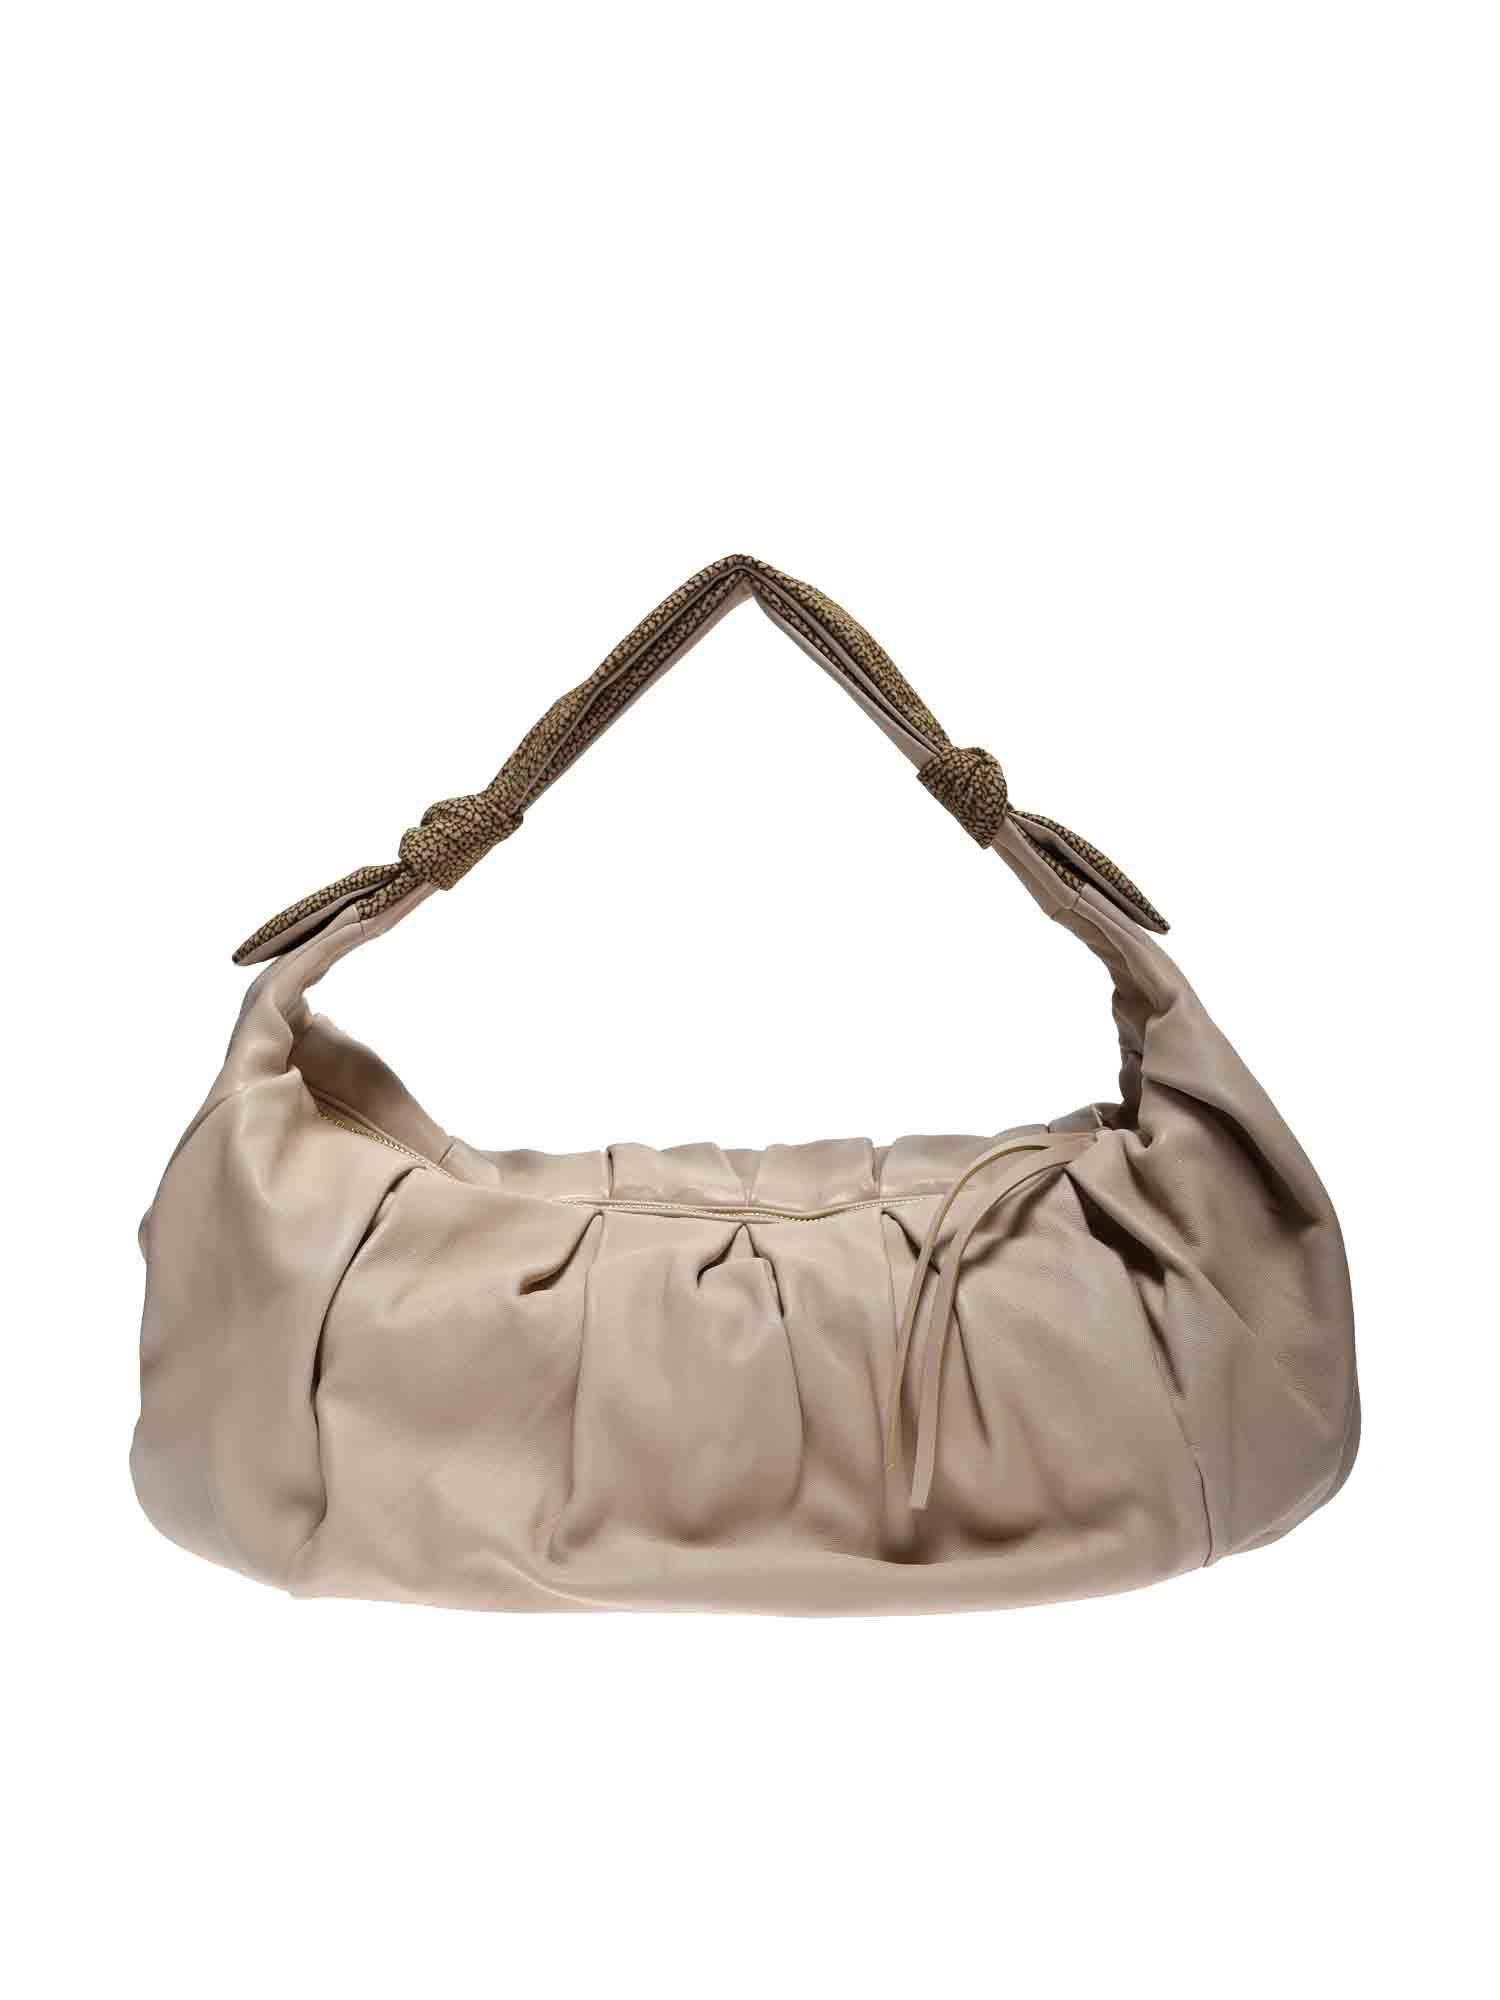 Borbonese LARGE DUNA BAG IN BEIGE